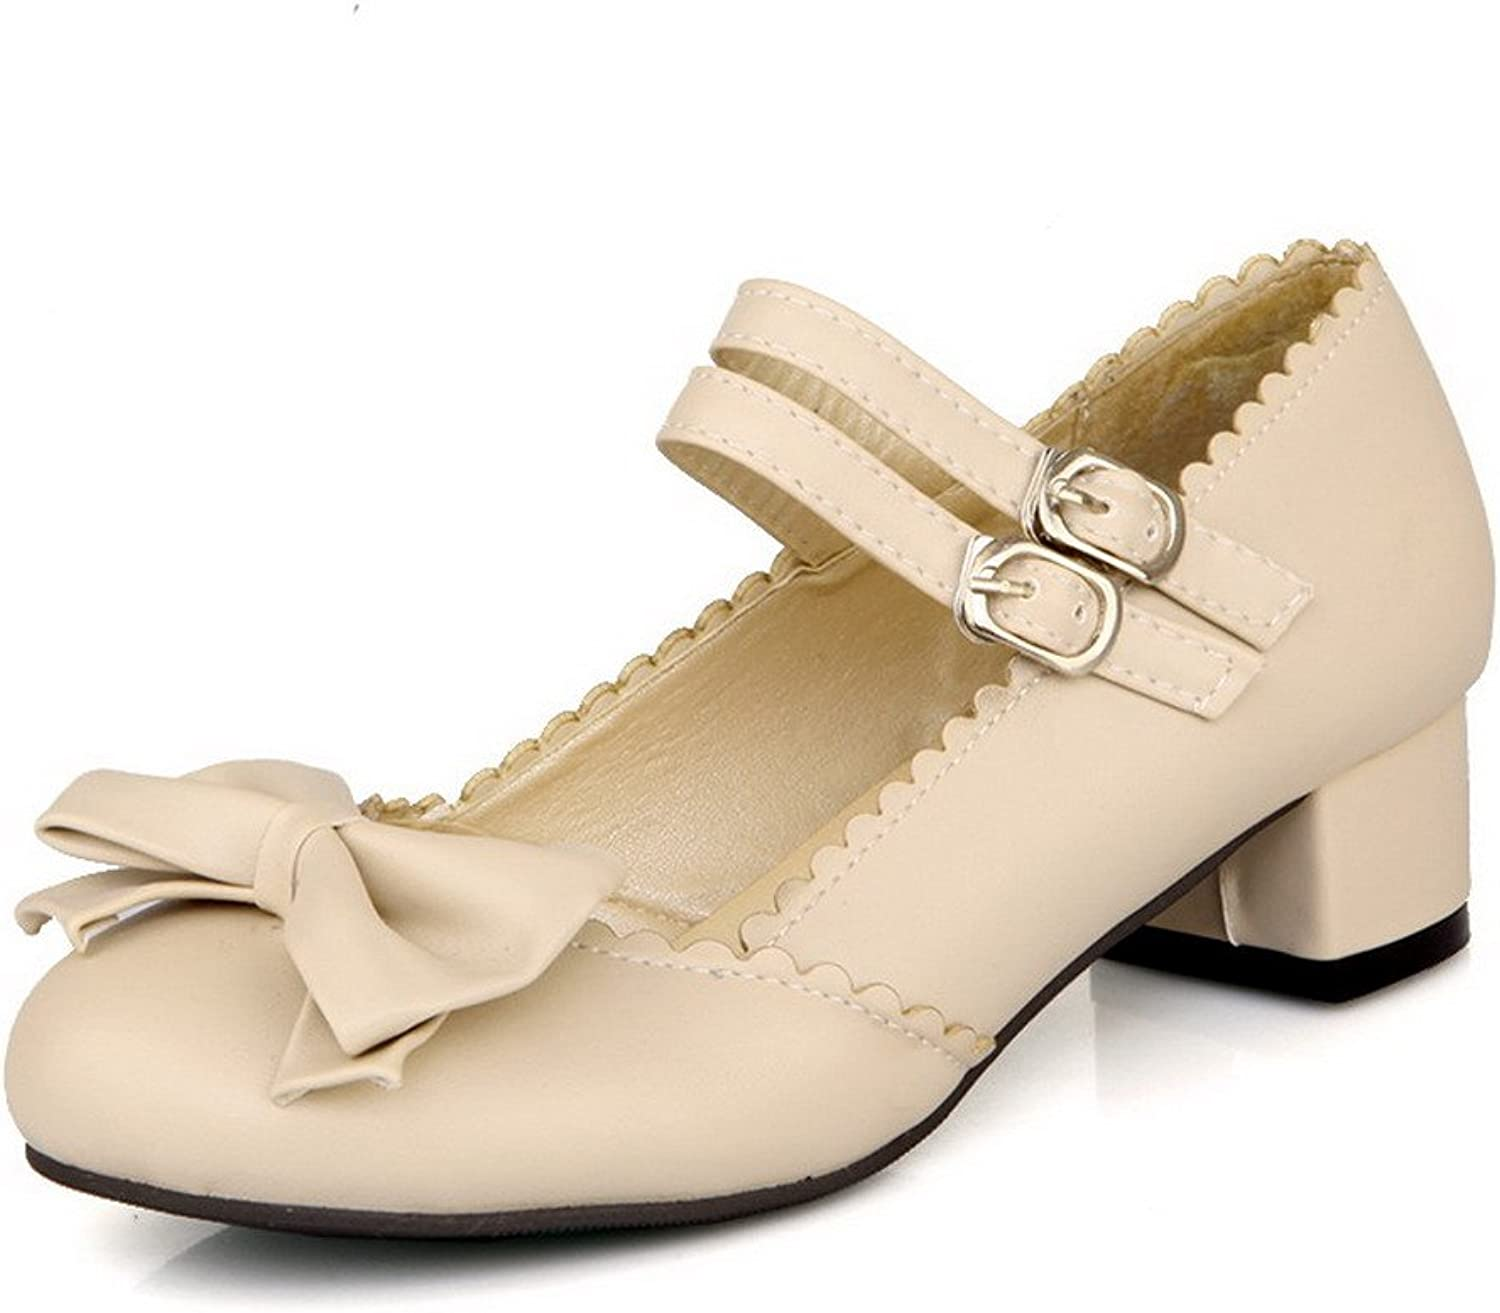 WeiPoot Women's PU Soft Material Round Closed Toe Low-Heels Pumps-shoes, Beige, 34